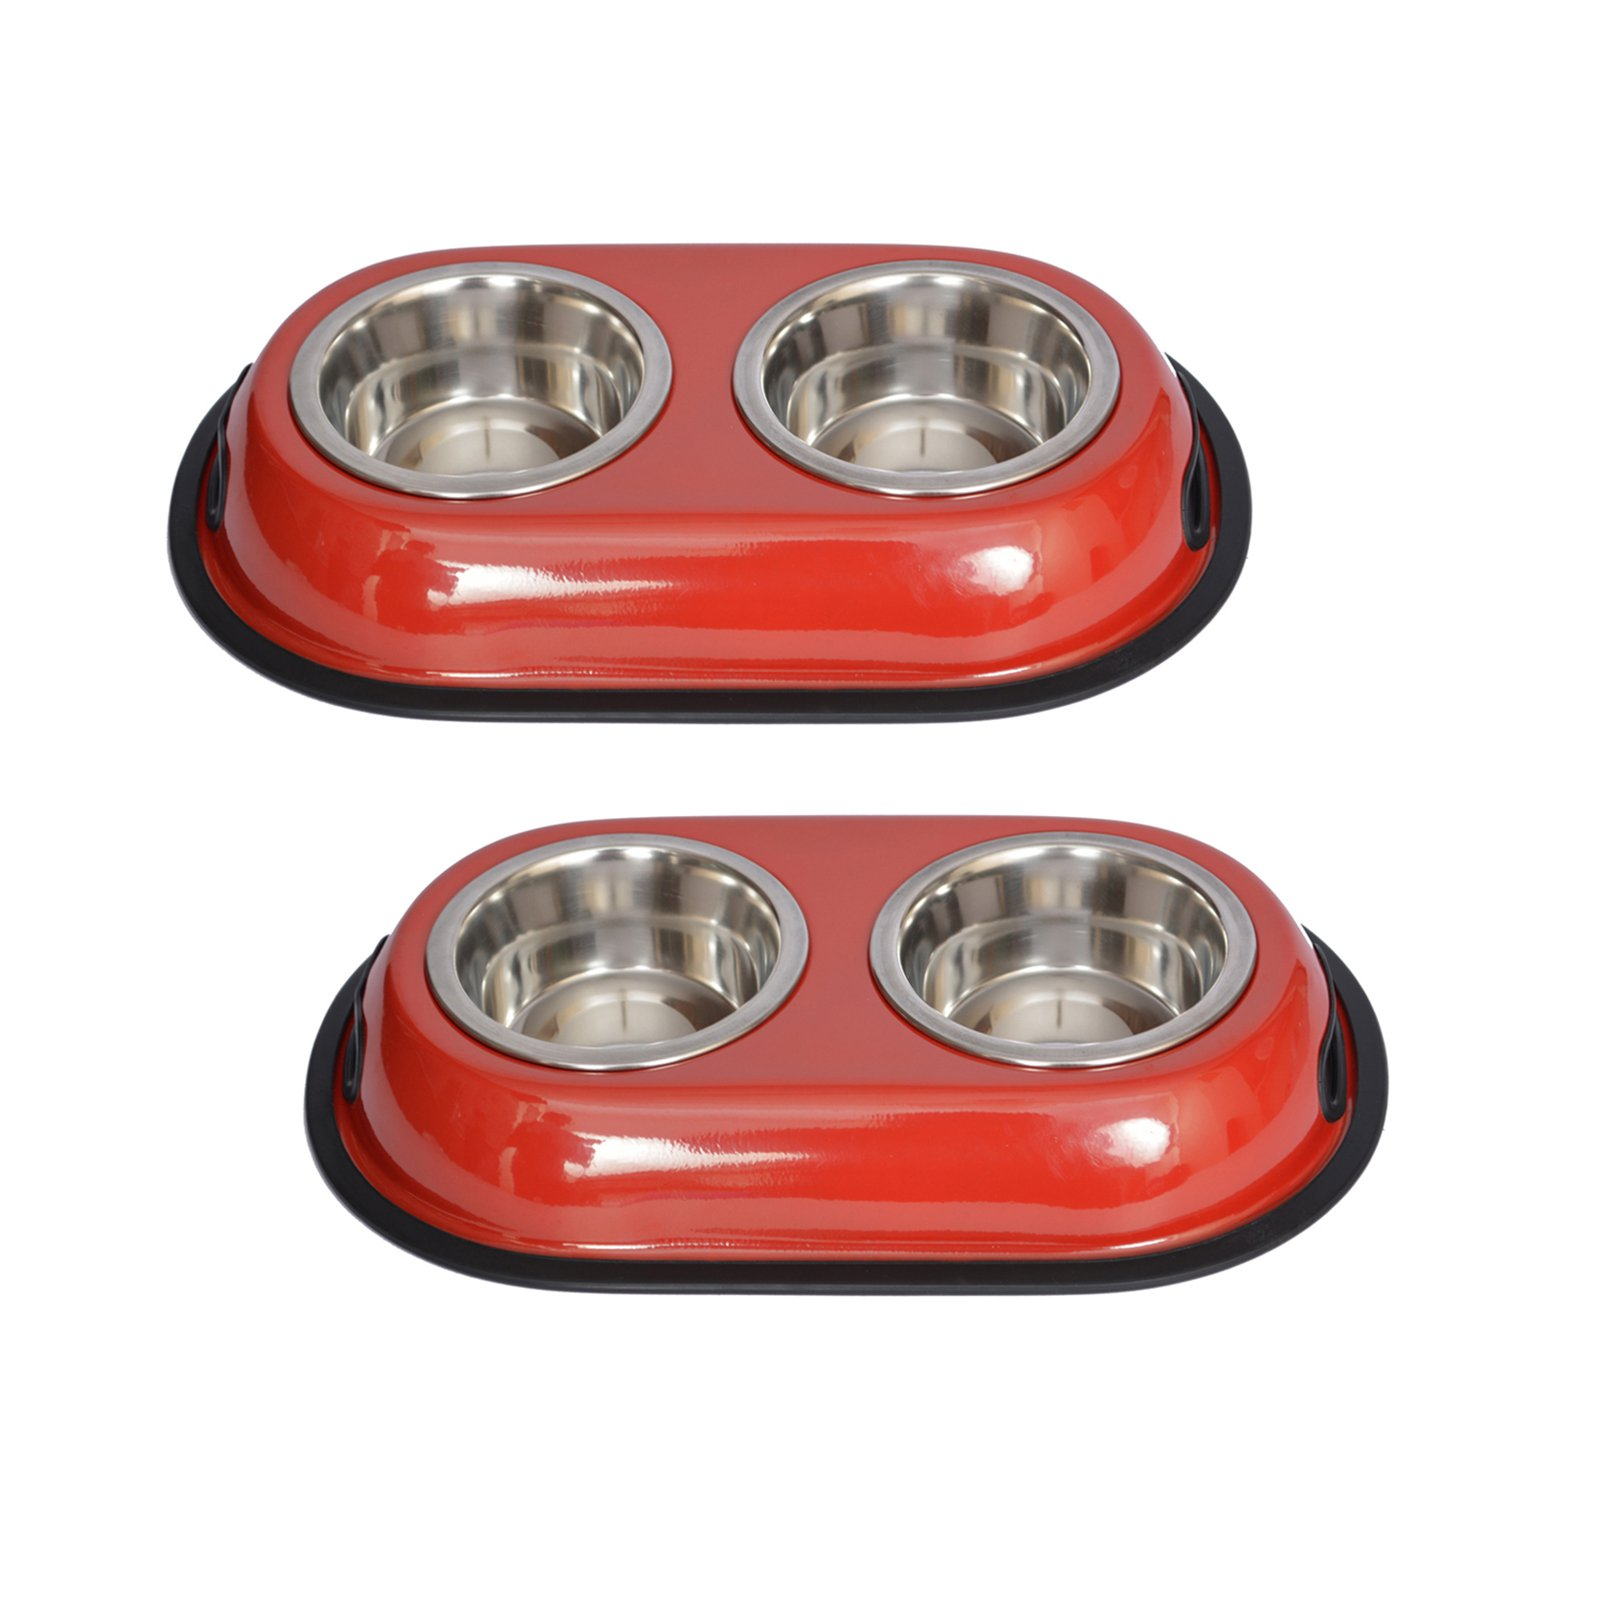 2-Pack Color Splash Stainless Steel Double Diner (Red) For Dog/Cat, 1 Qt, 32 Oz, 4 Cup